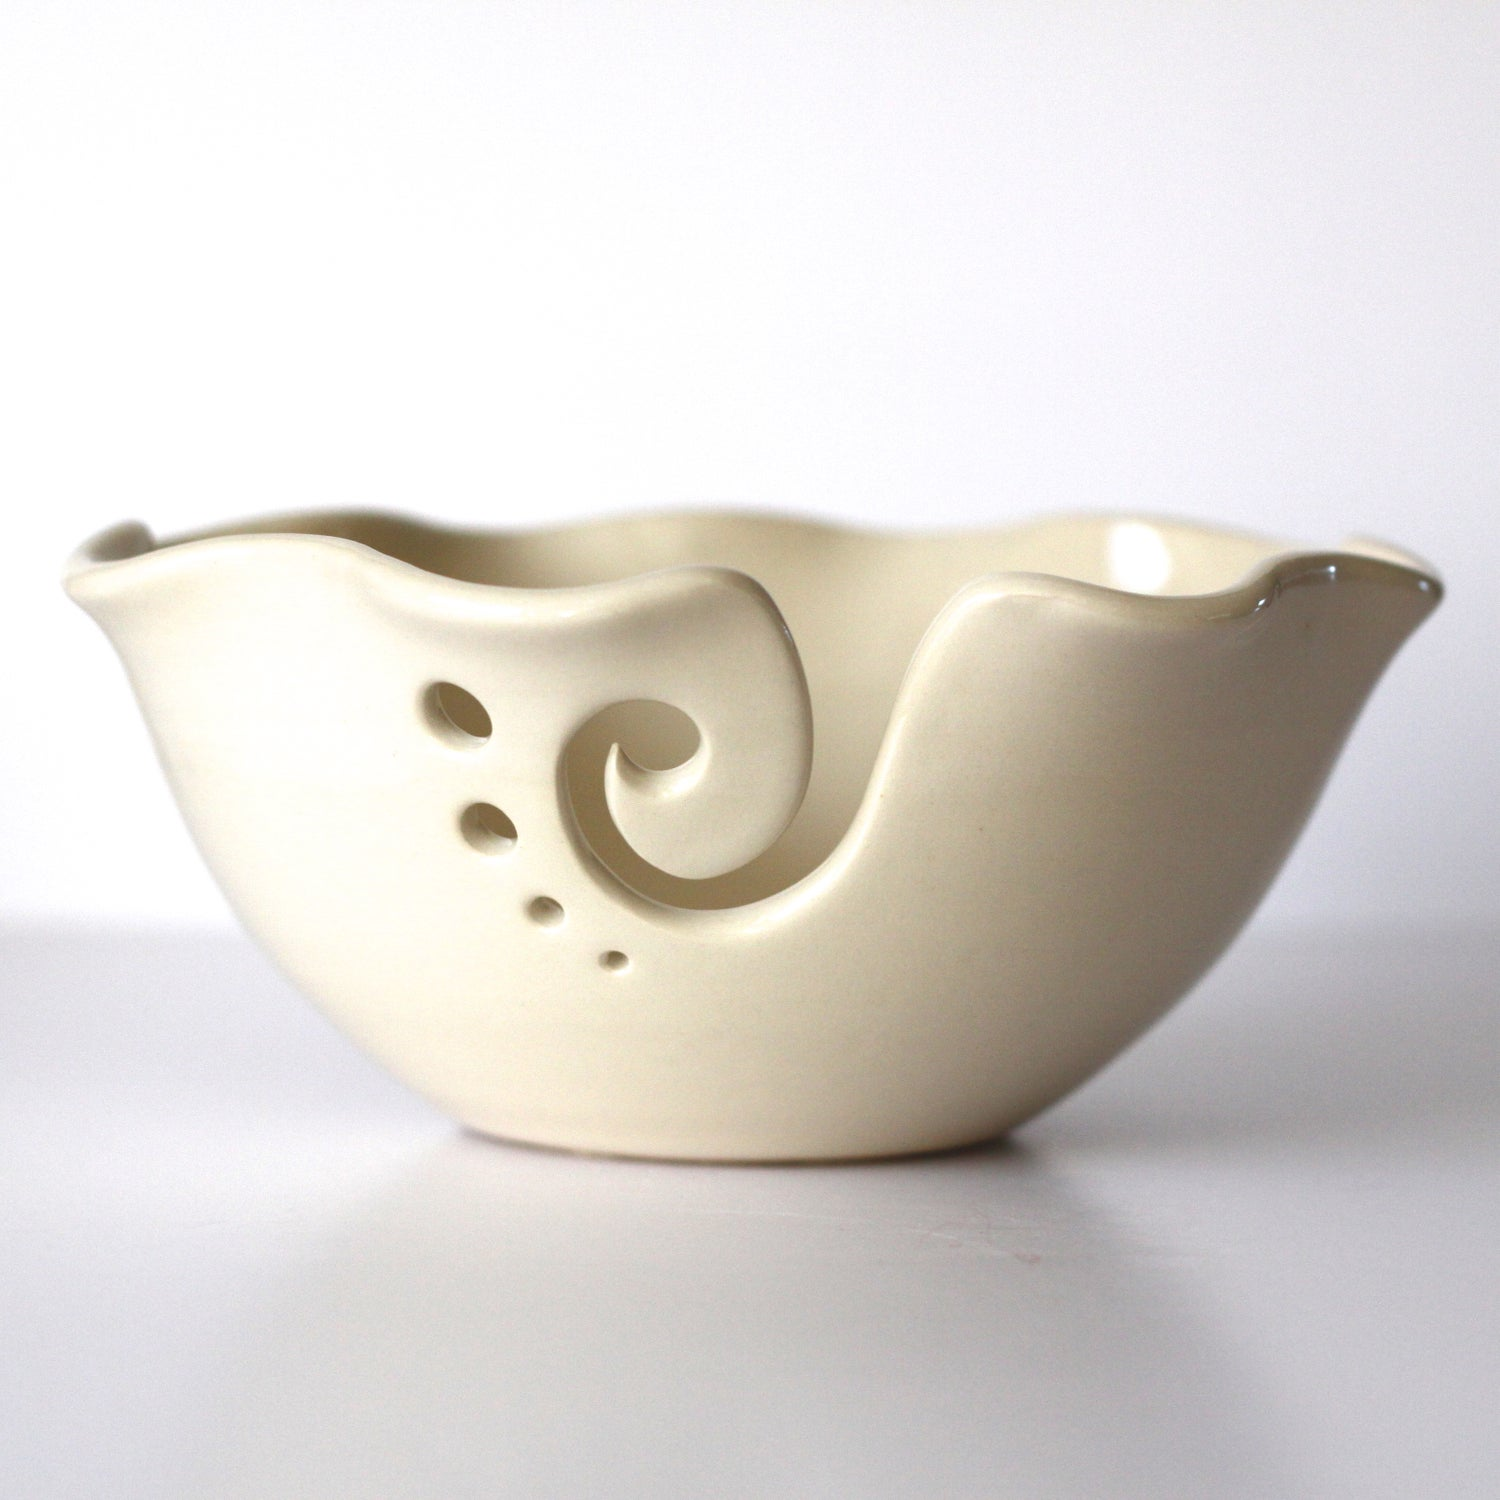 Image of White Ruffled Ceramic Yarn Bowl, Knitting Bowl, Crochet Bowl, Pottery Yarn Bowl, Ready to Ship